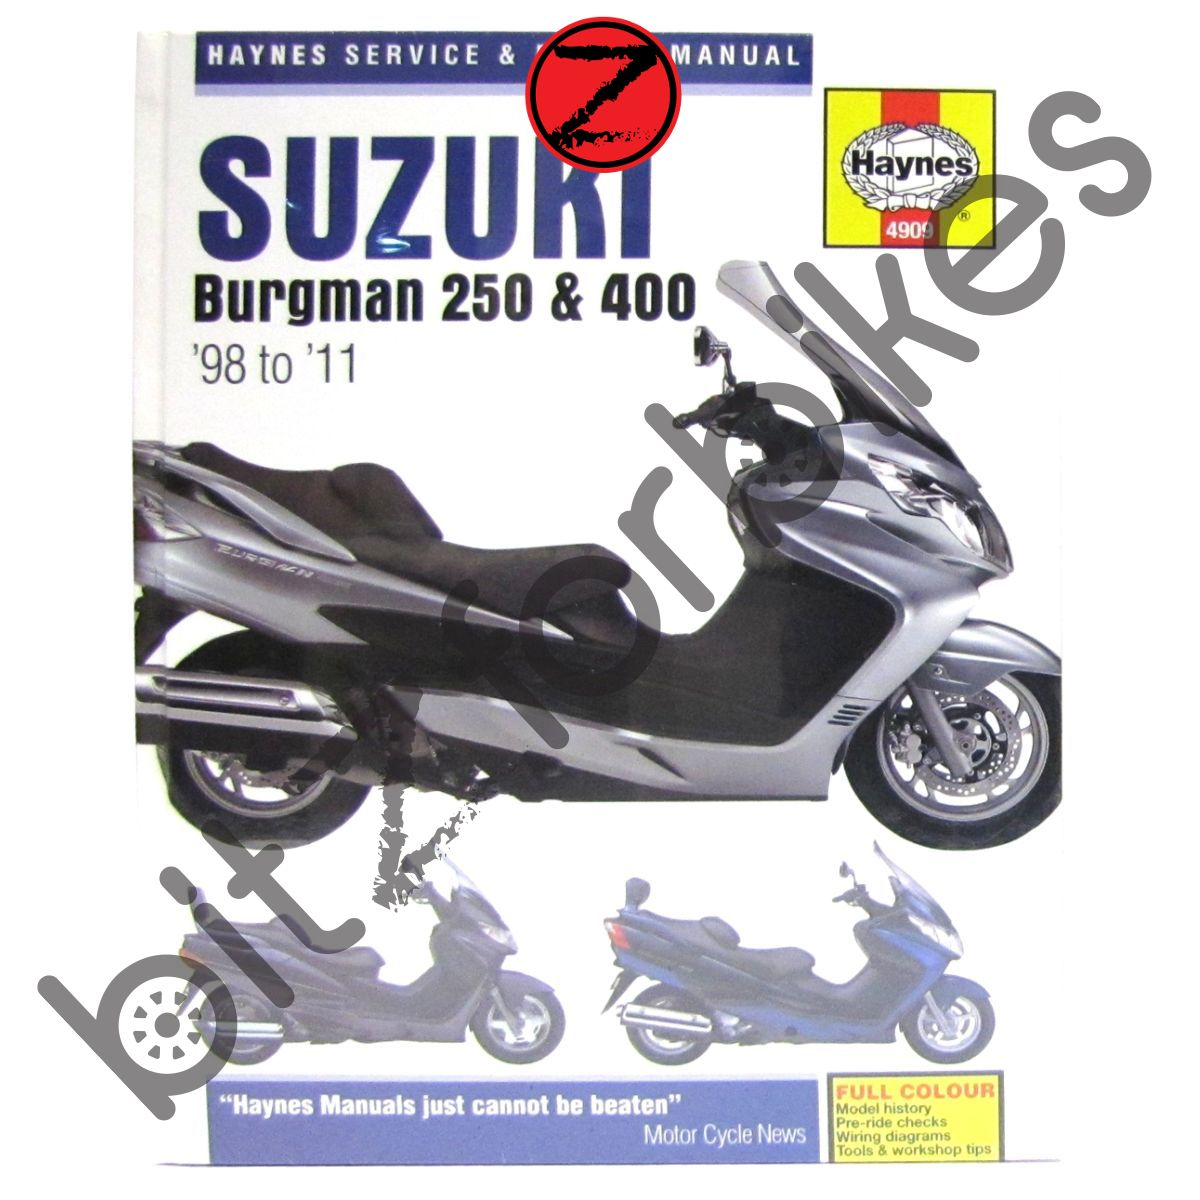 Suzuki Burgman Wiring Diagram Electrical Diagrams 1998 Esteem 250 Car Explained U2022 2001